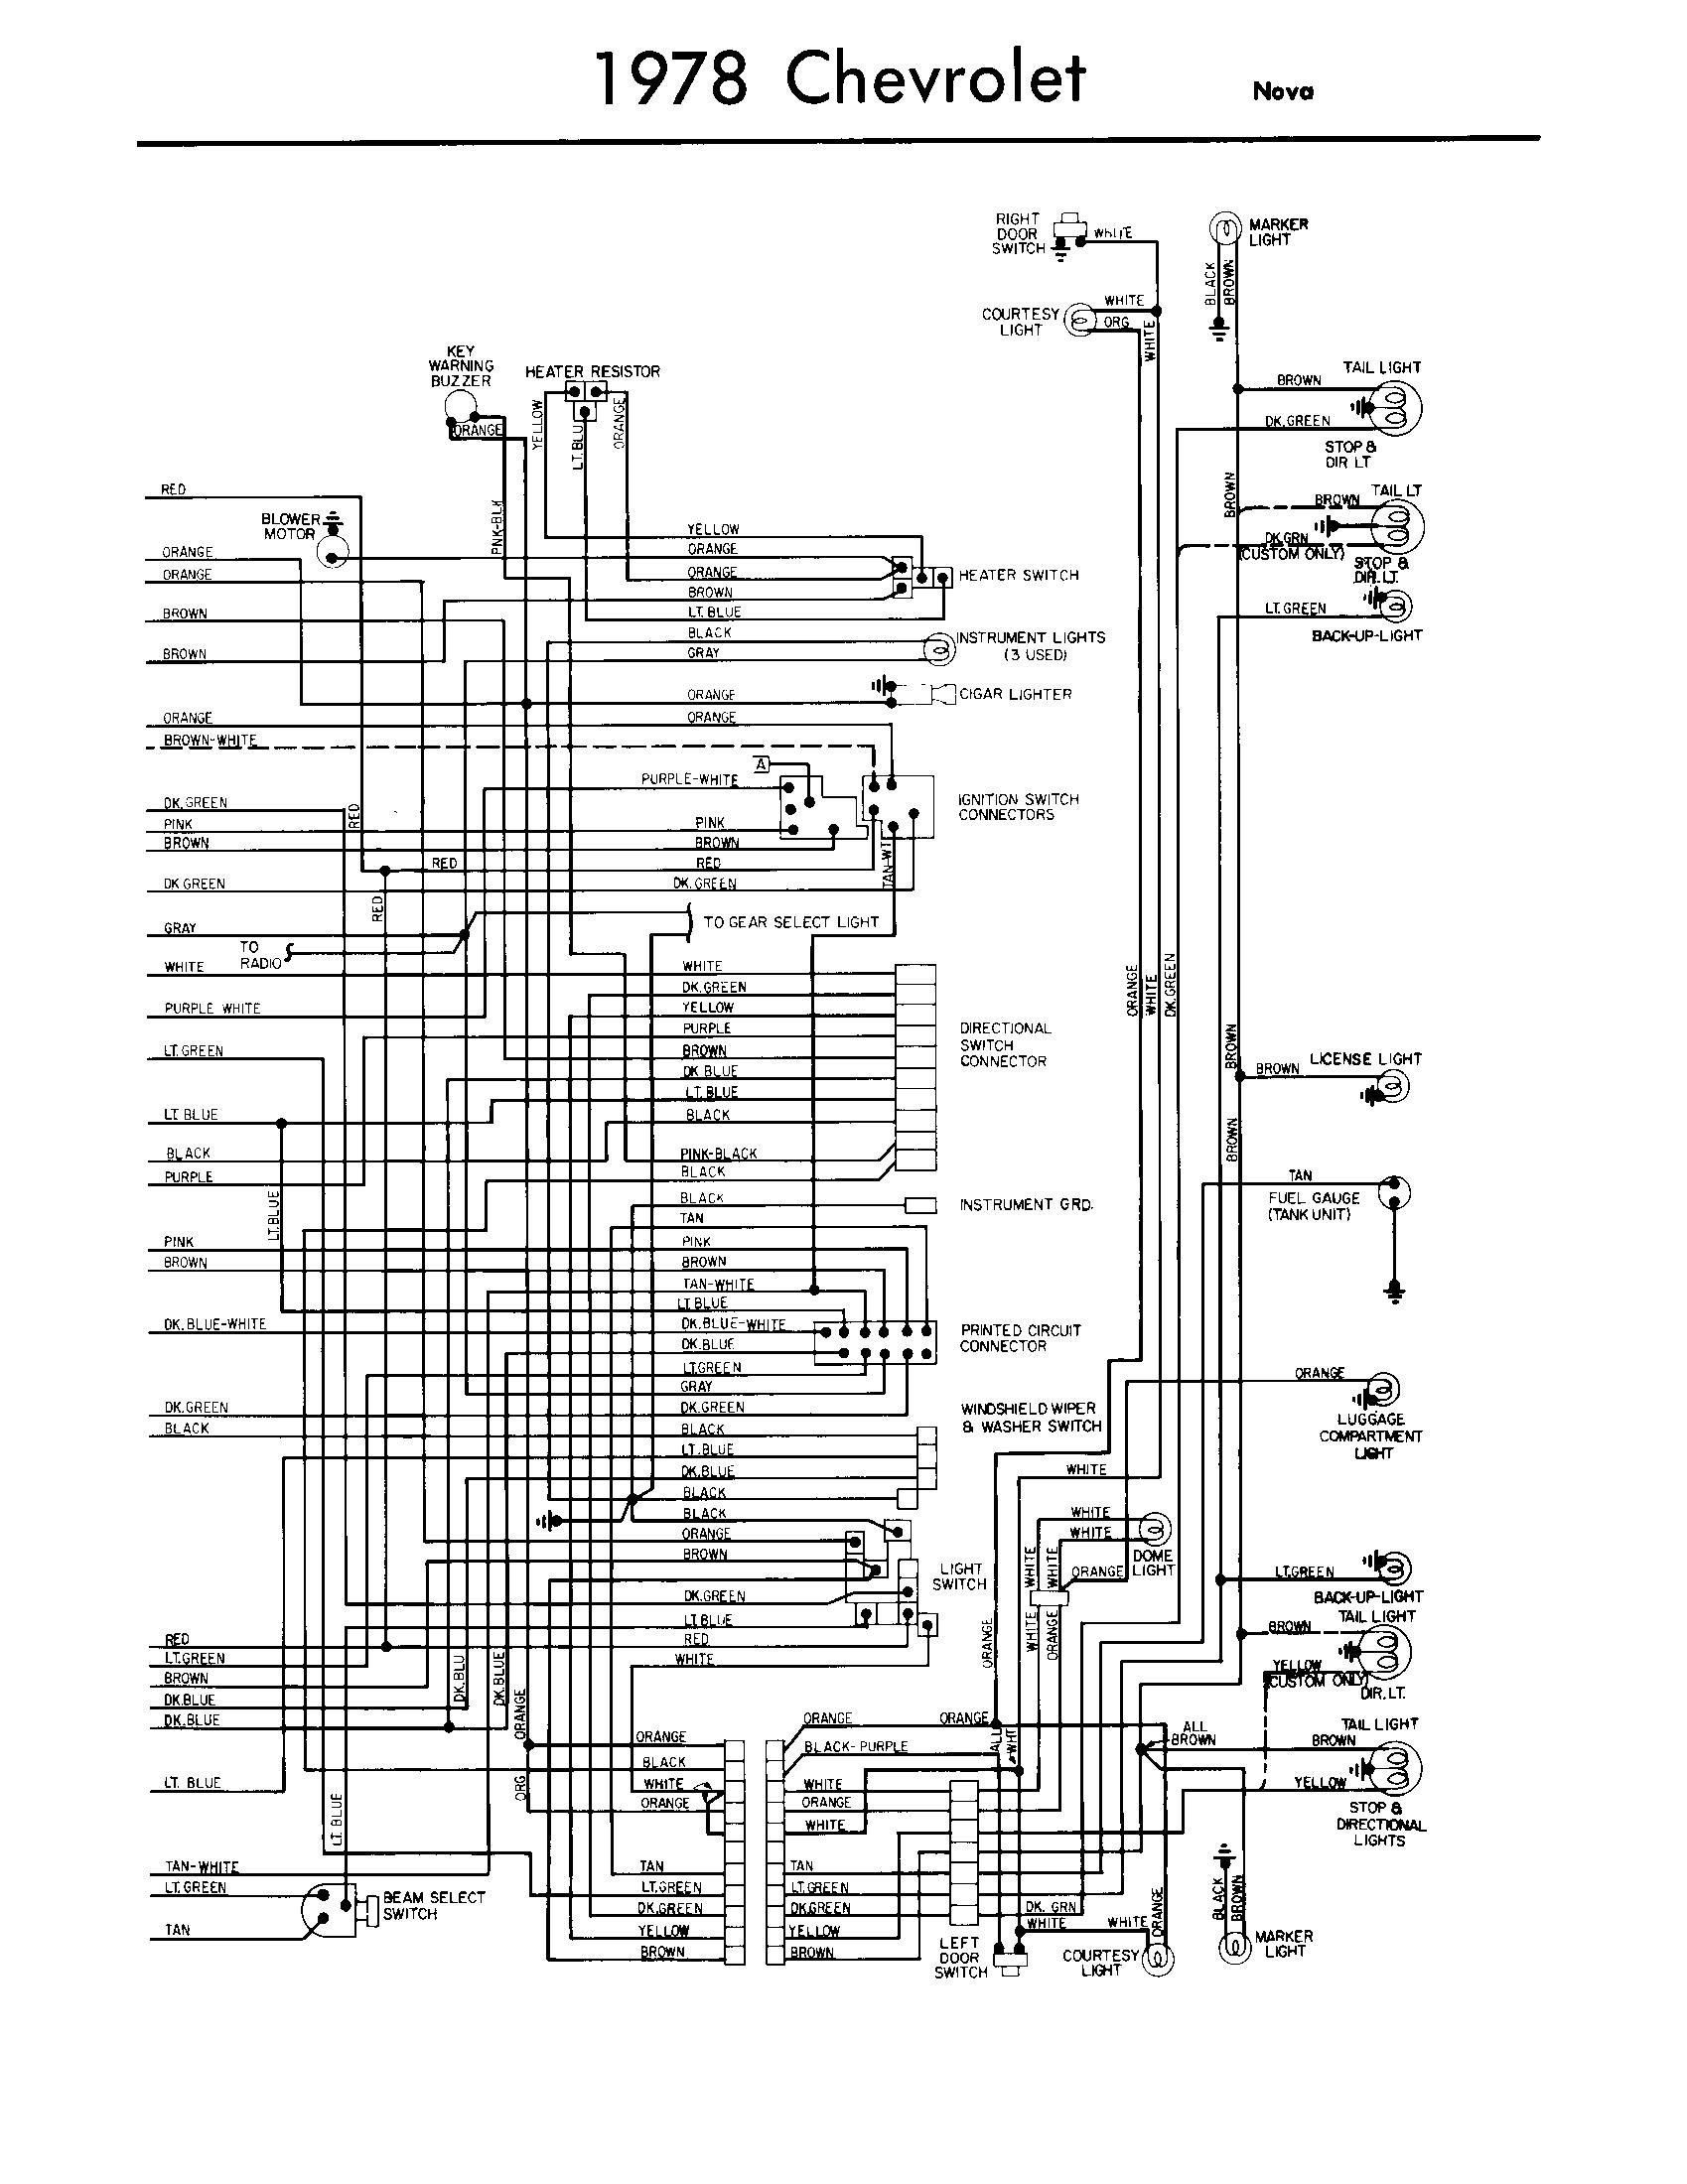 1979 Chevy Corvette Wiring Schematic Php Free Download Mesmerizing 1976 Diagram Chevy Trucks Chevy Electrical Wiring Diagram